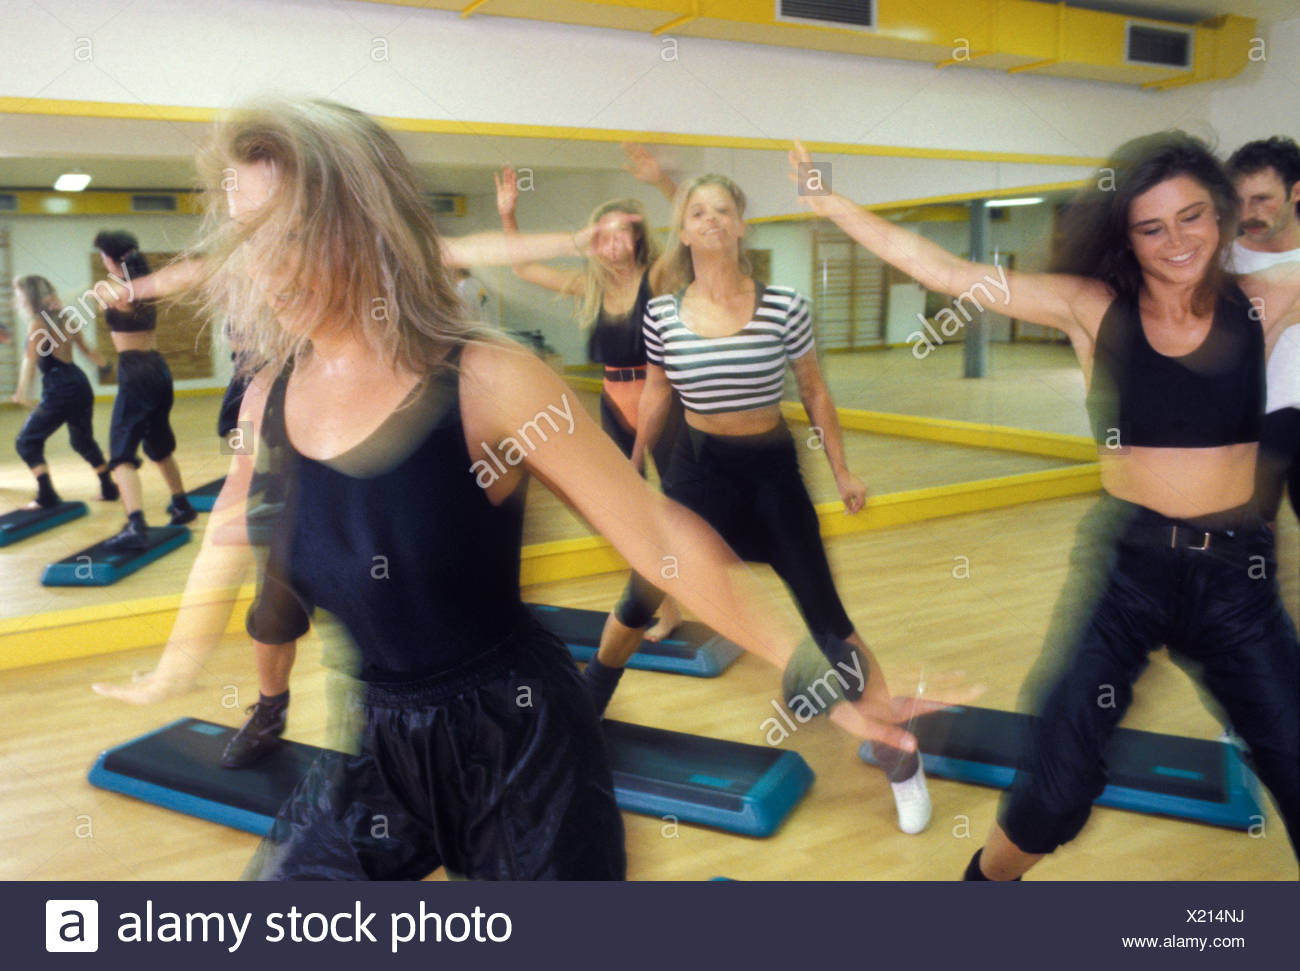 Group of young women exercising in gym - Stock Image